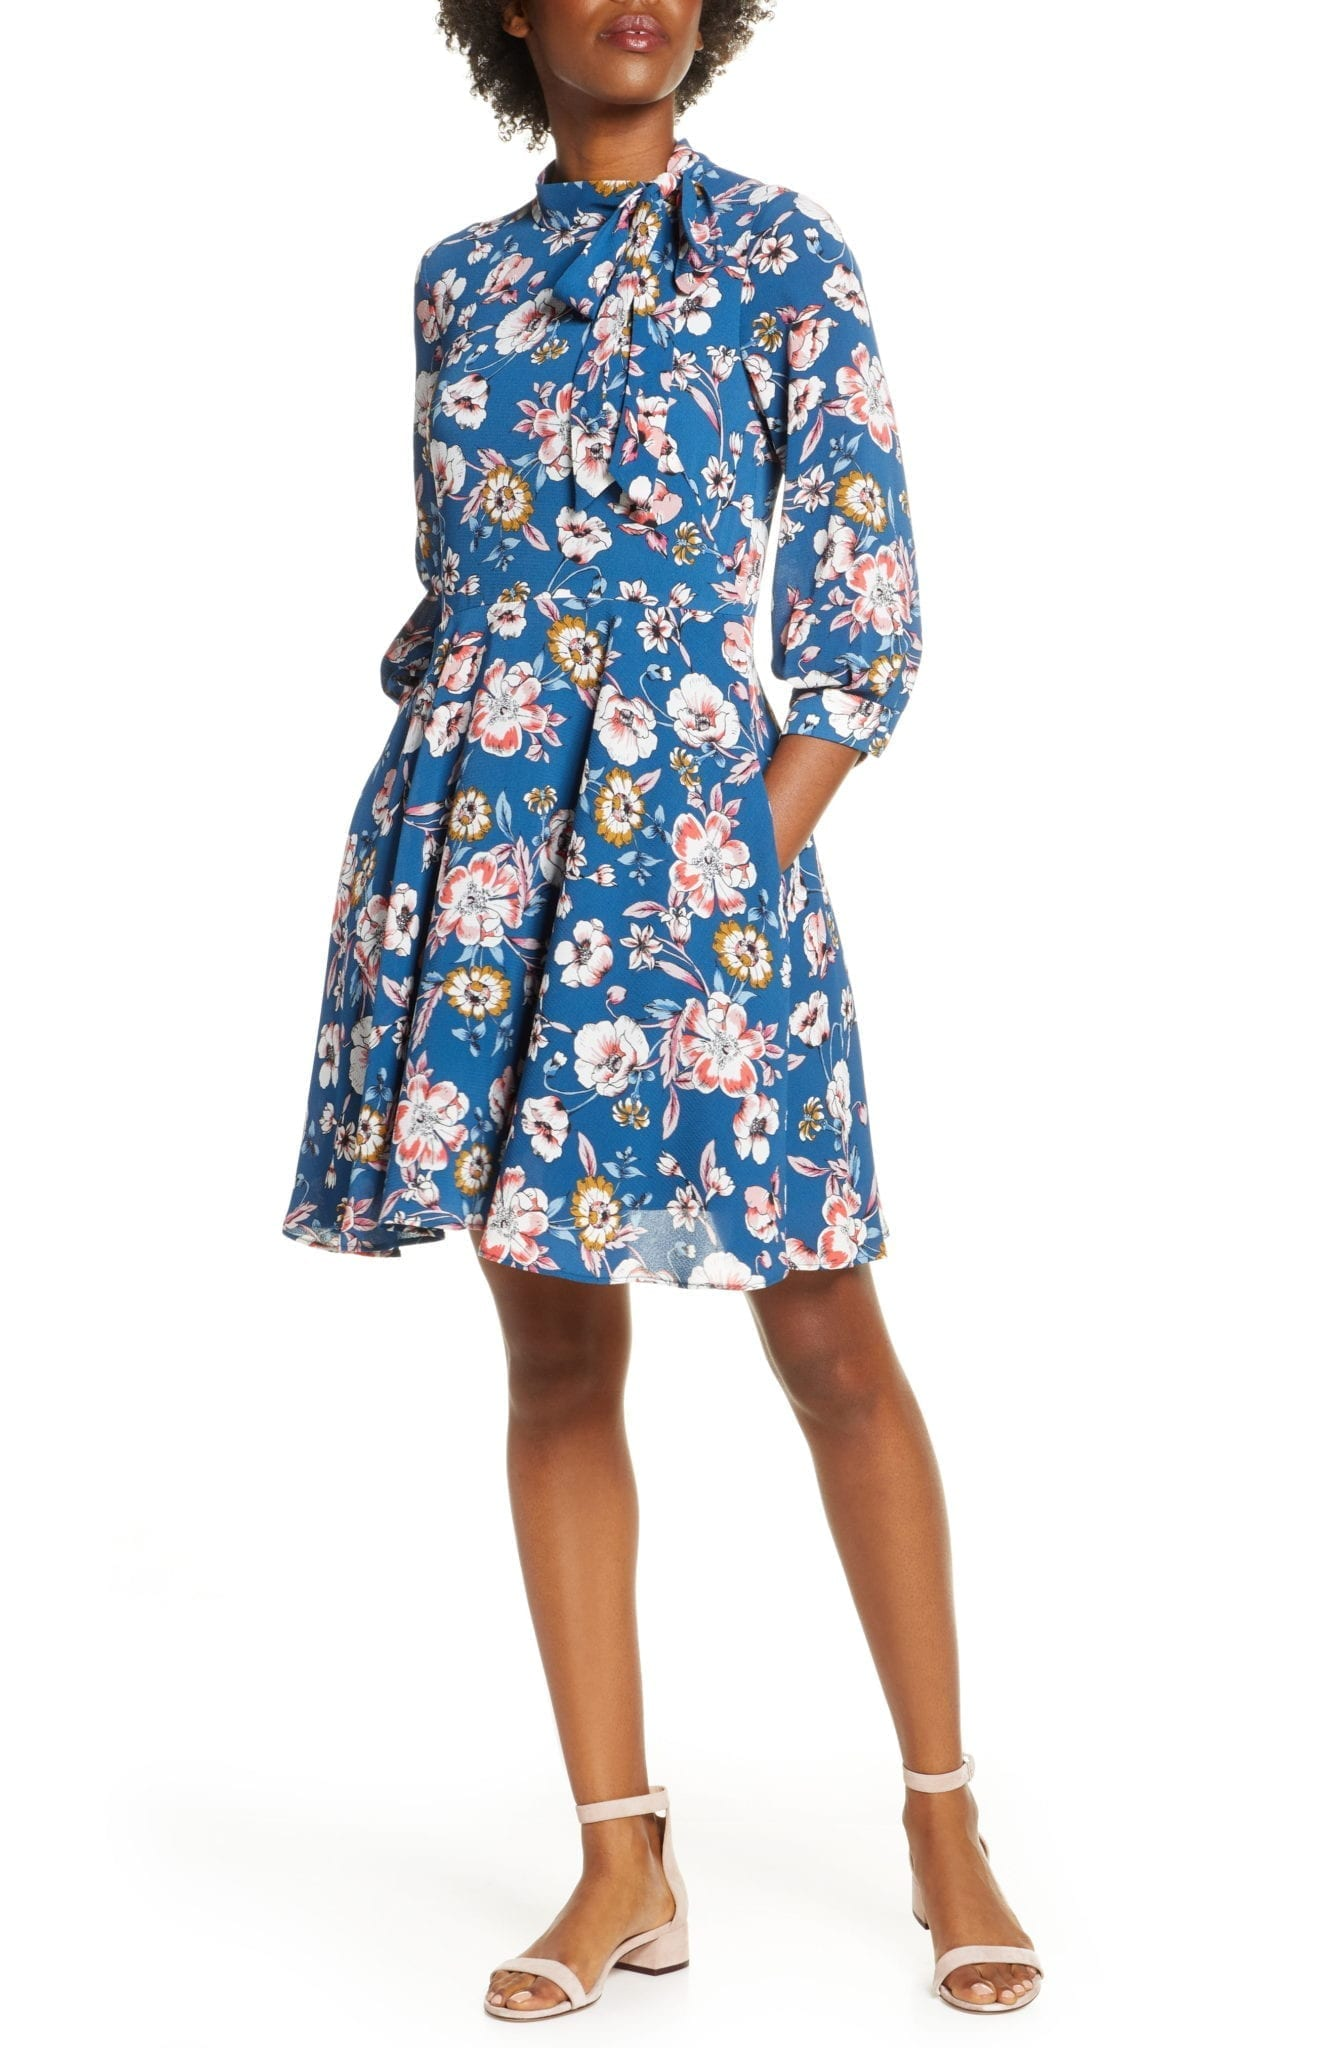 ELIZA J Floral Tie Neck Fit & Flare Dress